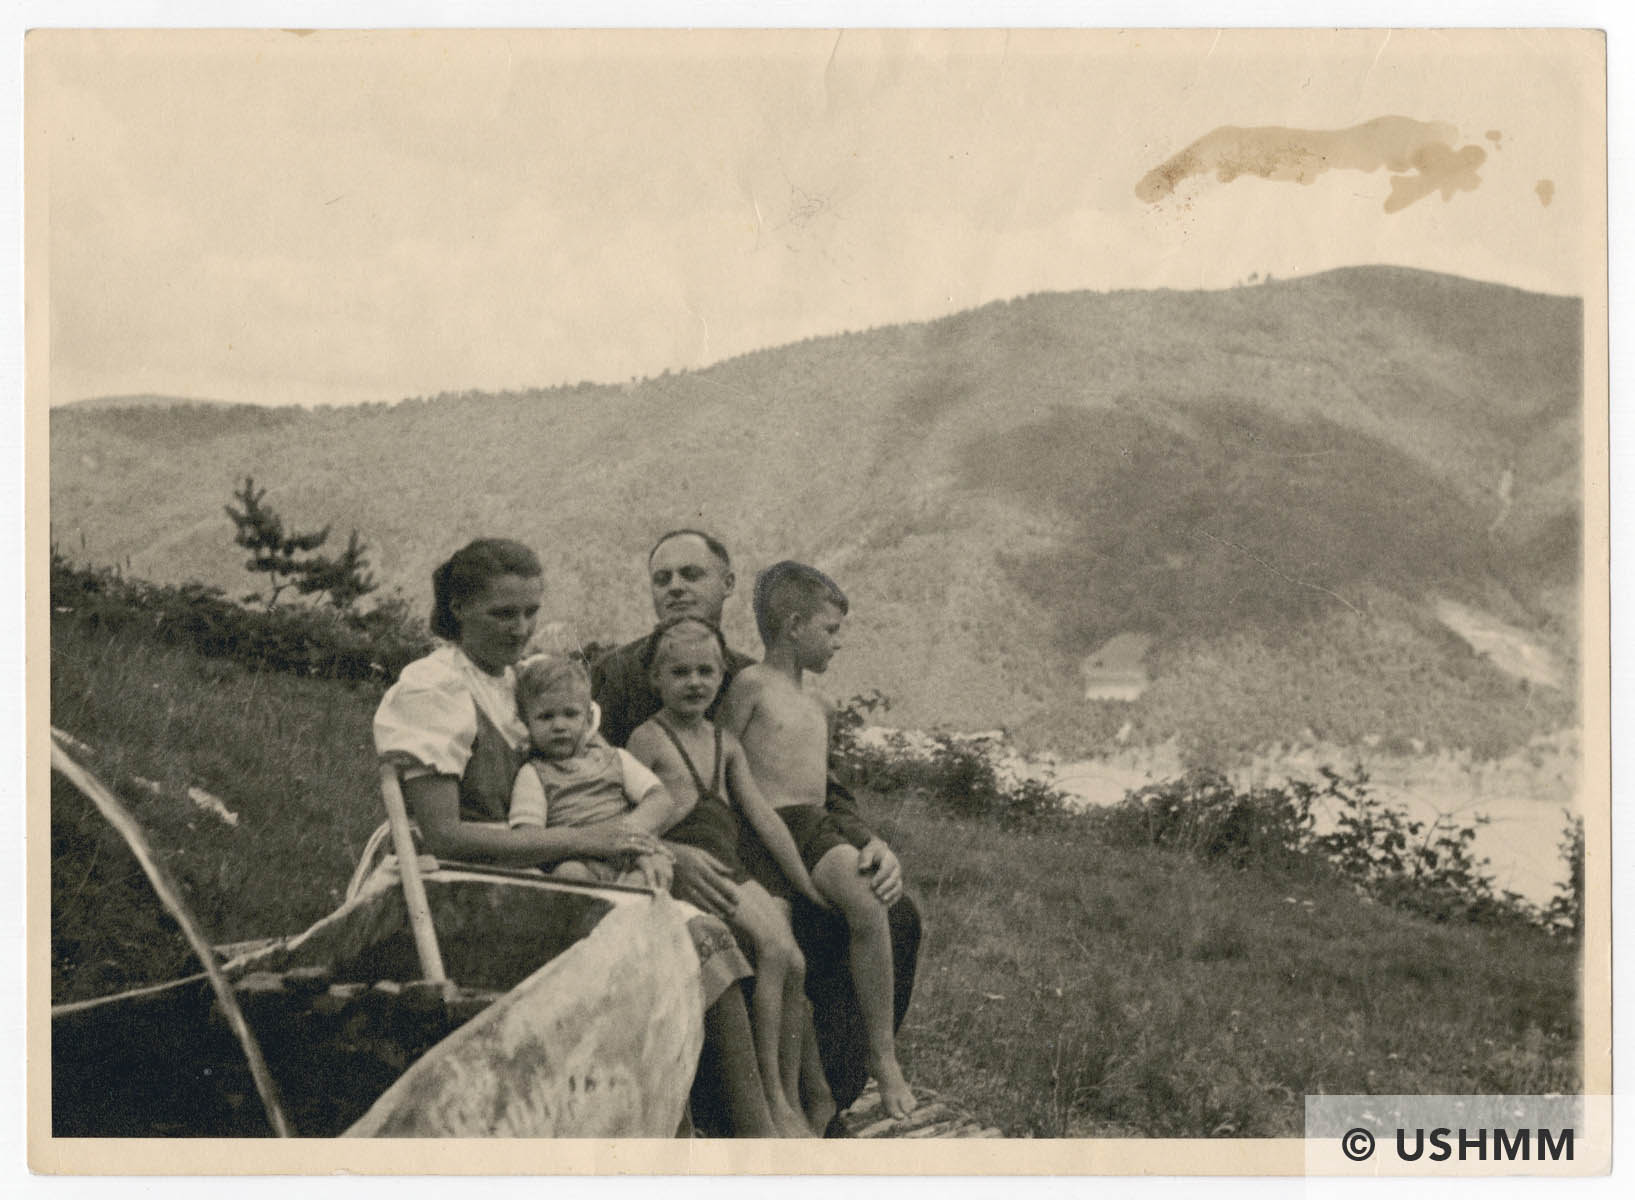 Dr Eduard Wirths on holiday in Solahütte. 1944 USHMM 69090